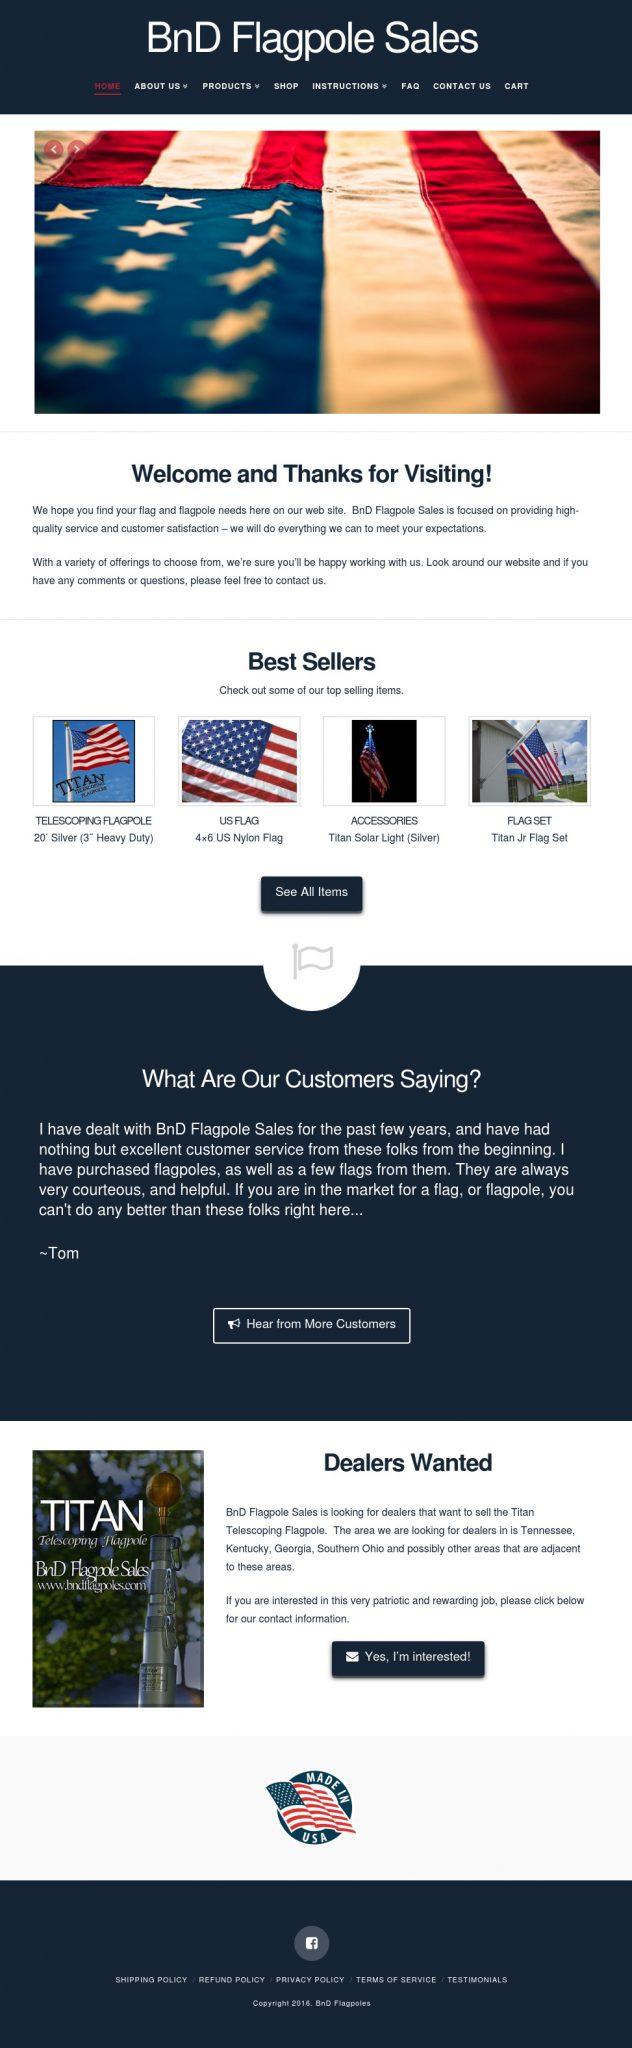 BnD Flagpole Sales - Website Design